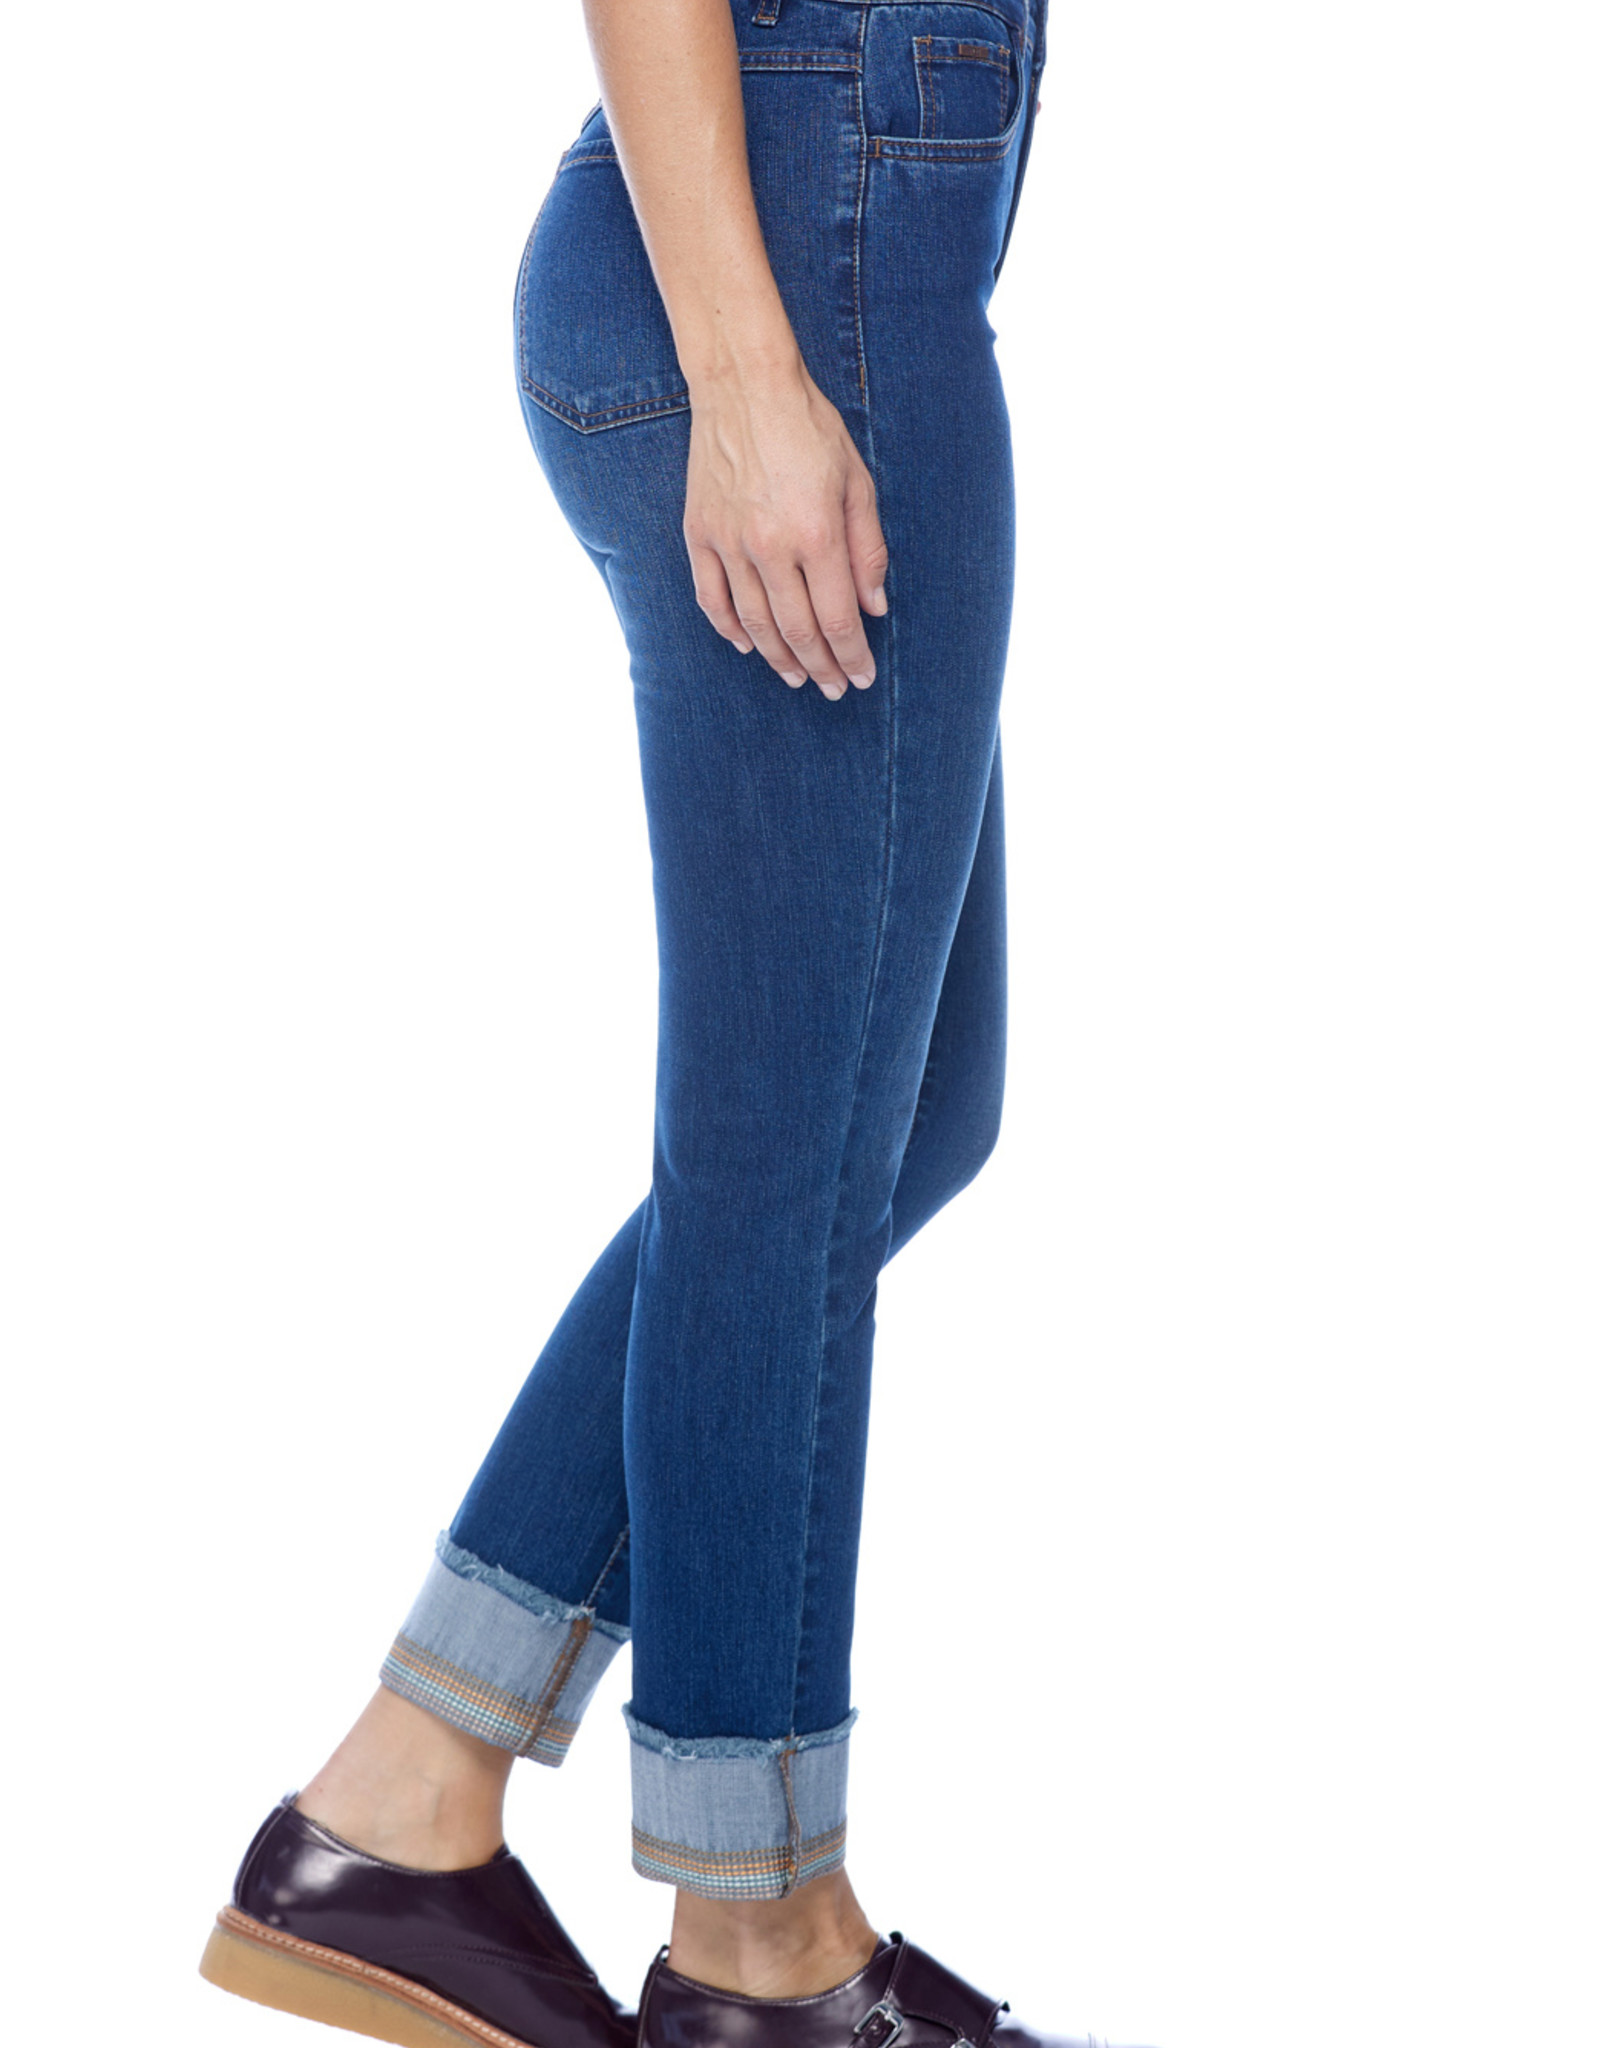 French Dressing Jeans FDJ, Suzanne cigarette ankle w/ embroidery ,6000779